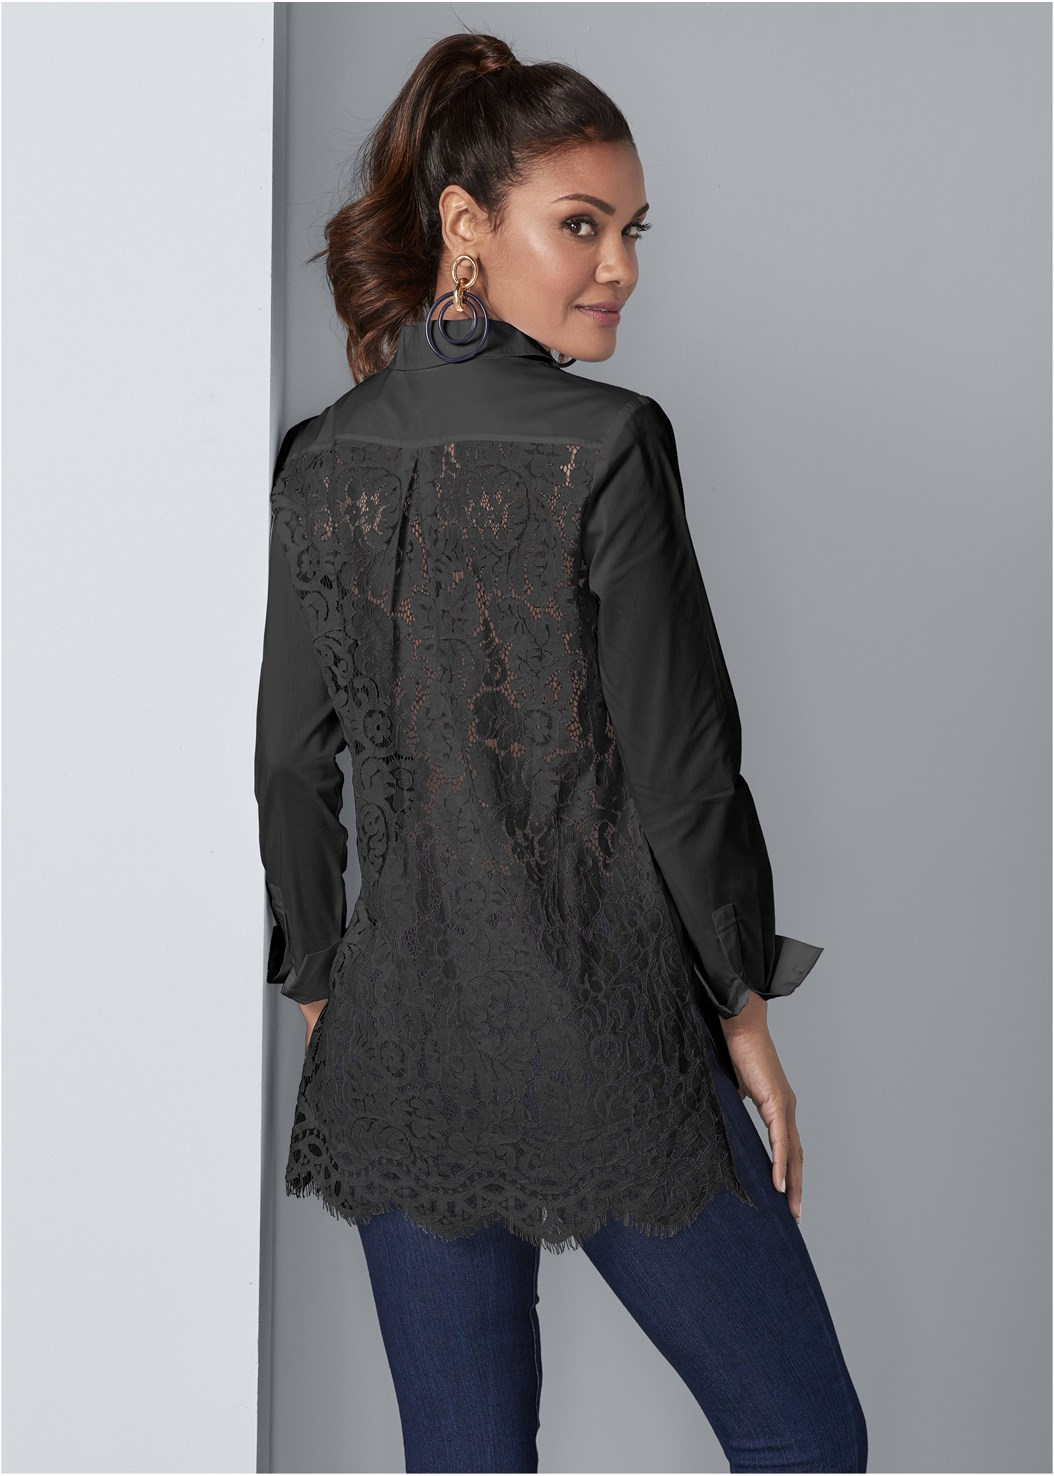 Lace Back Blouse,Western Style Booties